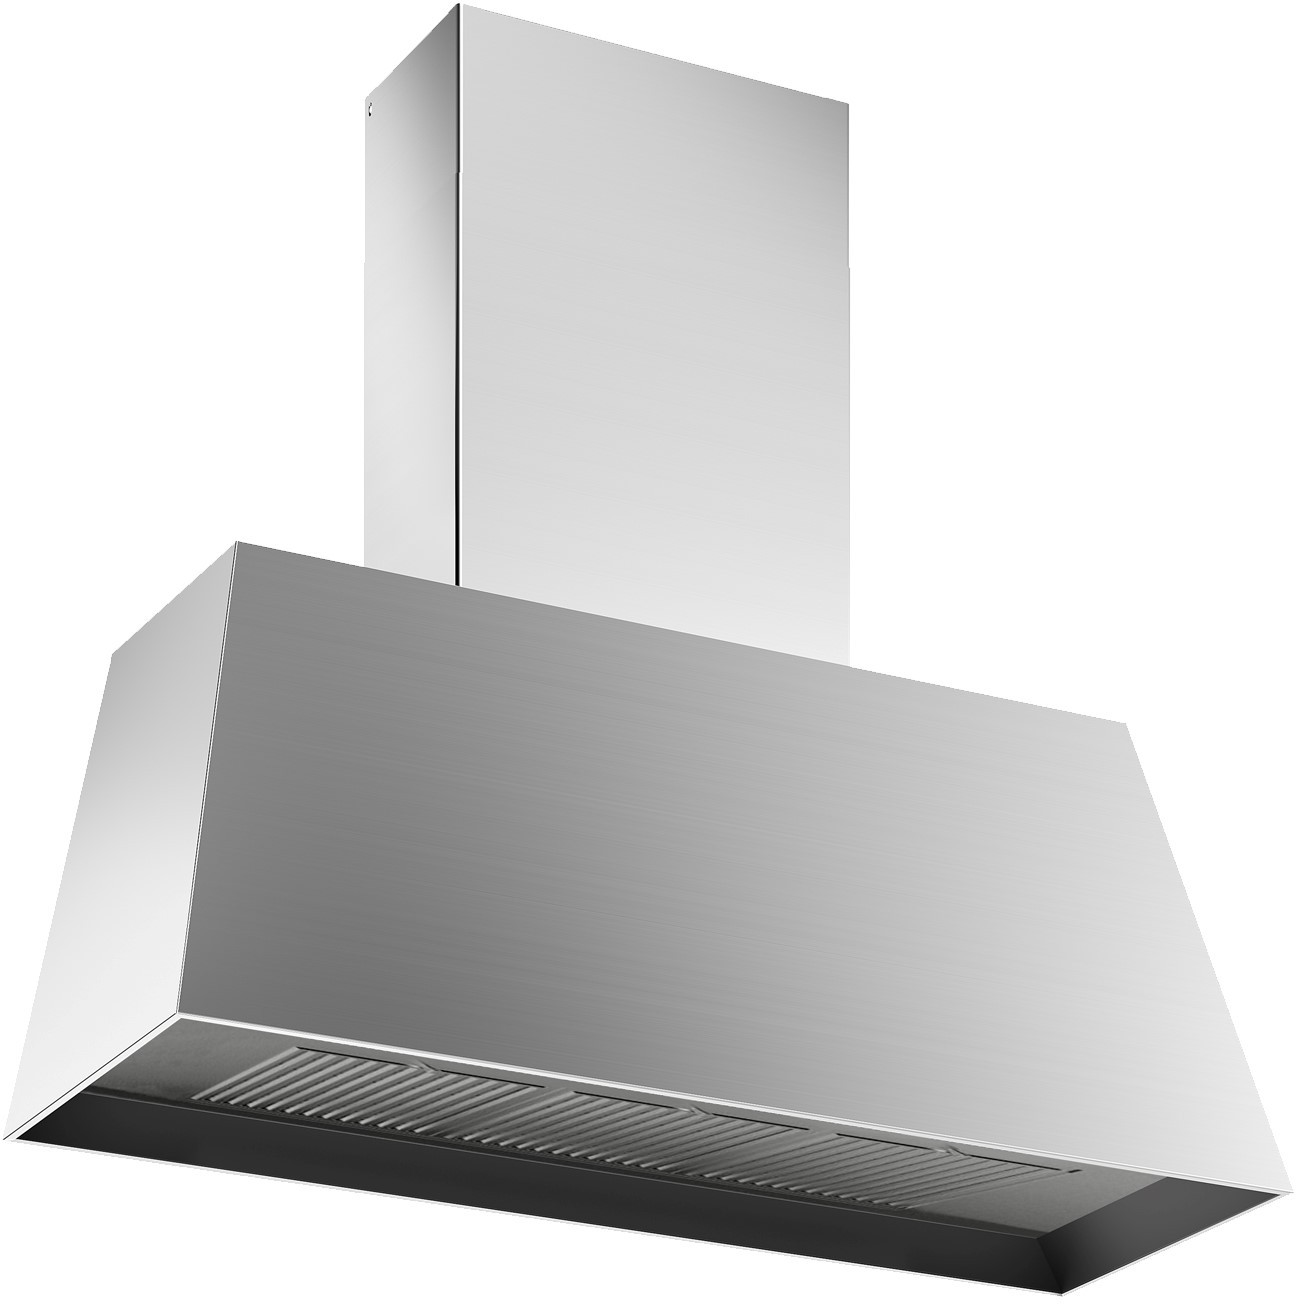 Bertazzoni Rangehood 36inch showcased by Corbeil Electro Store